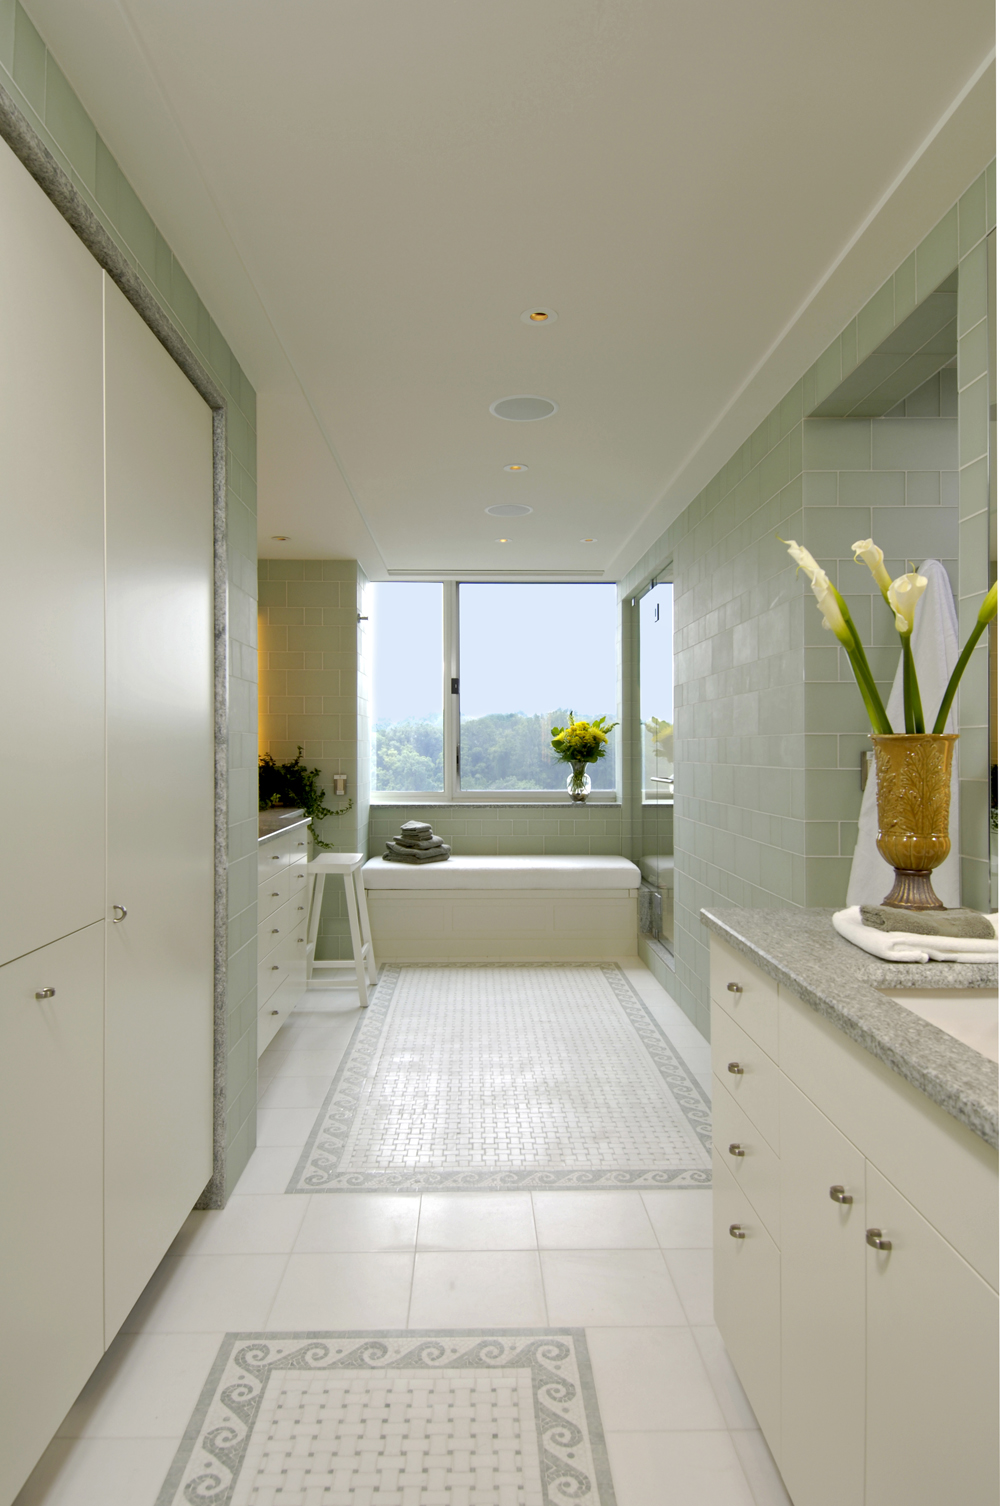 Dc Bathroom Remodel Awardwinning Condominium Penthouse Renovation In Washington D.c.